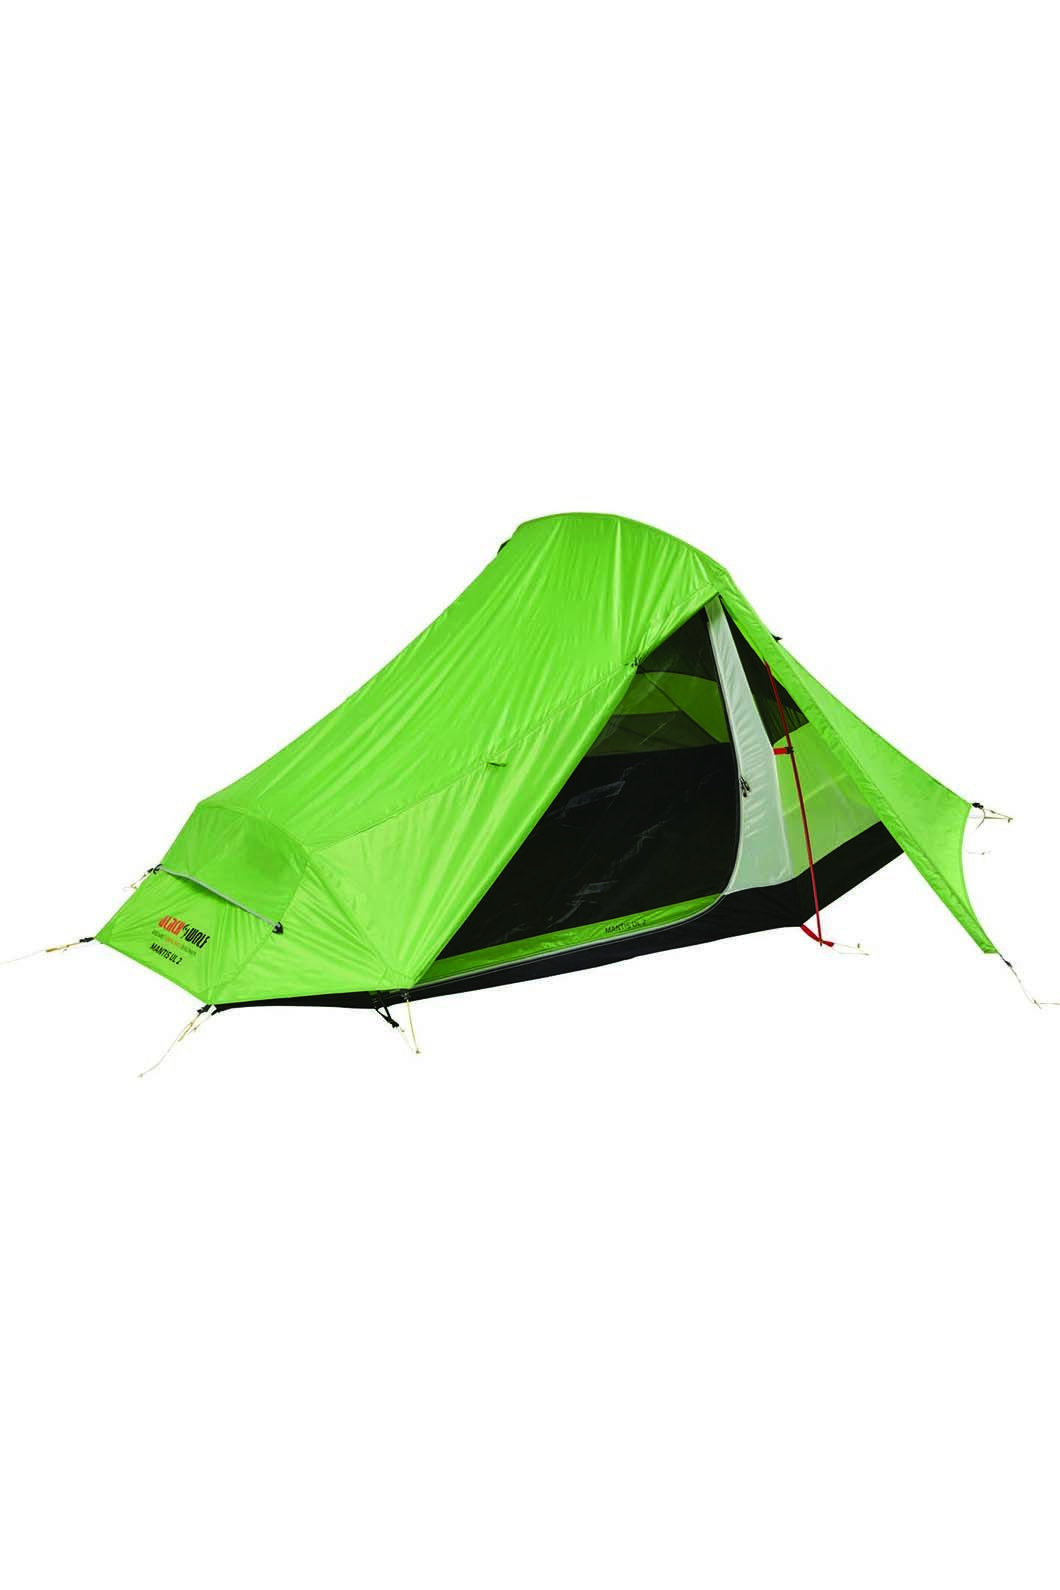 wolf Mantis II 2 Person Hiking Tent, None, hi-res